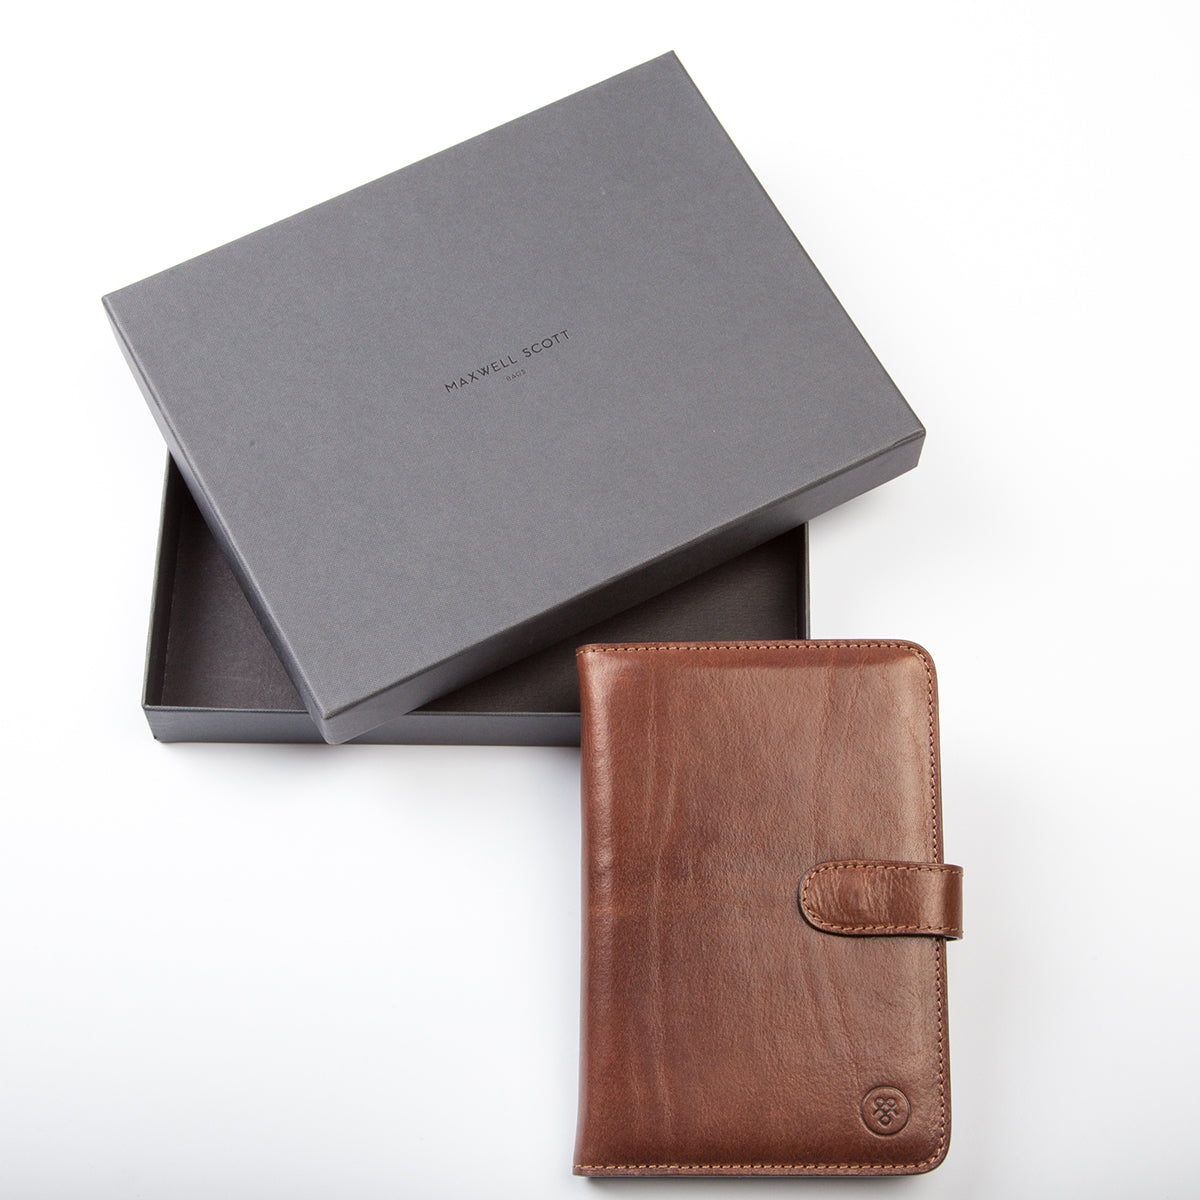 Image 6 of the 'Vieste' Chestnut Veg-Tanned Leather Travel Wallet